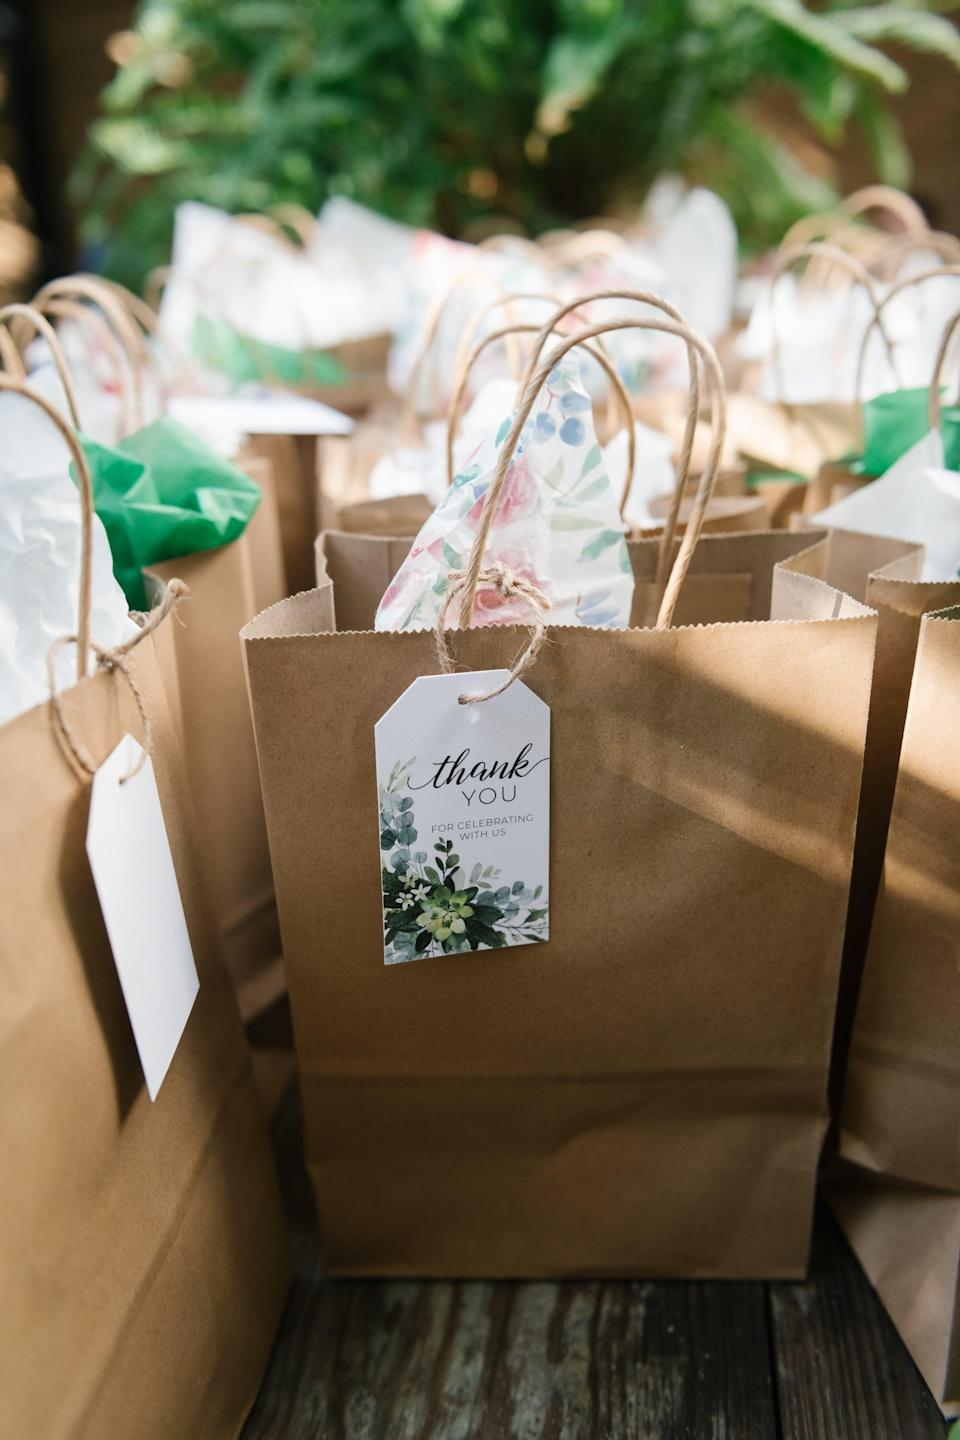 """<p>If you have personalized gifts for your guests, make <a class=""""link rapid-noclick-resp"""" href=""""https://www.popsugar.com/latest/DIY"""" rel=""""nofollow noopener"""" target=""""_blank"""" data-ylk=""""slk:DIY"""">DIY</a> gift bags so you know which present belongs to which person. The easiest way to do this is by attaching homemade name cards to each bag. You can add string, confetti, tissue paper, and more if you want to take these to the next level.</p>"""